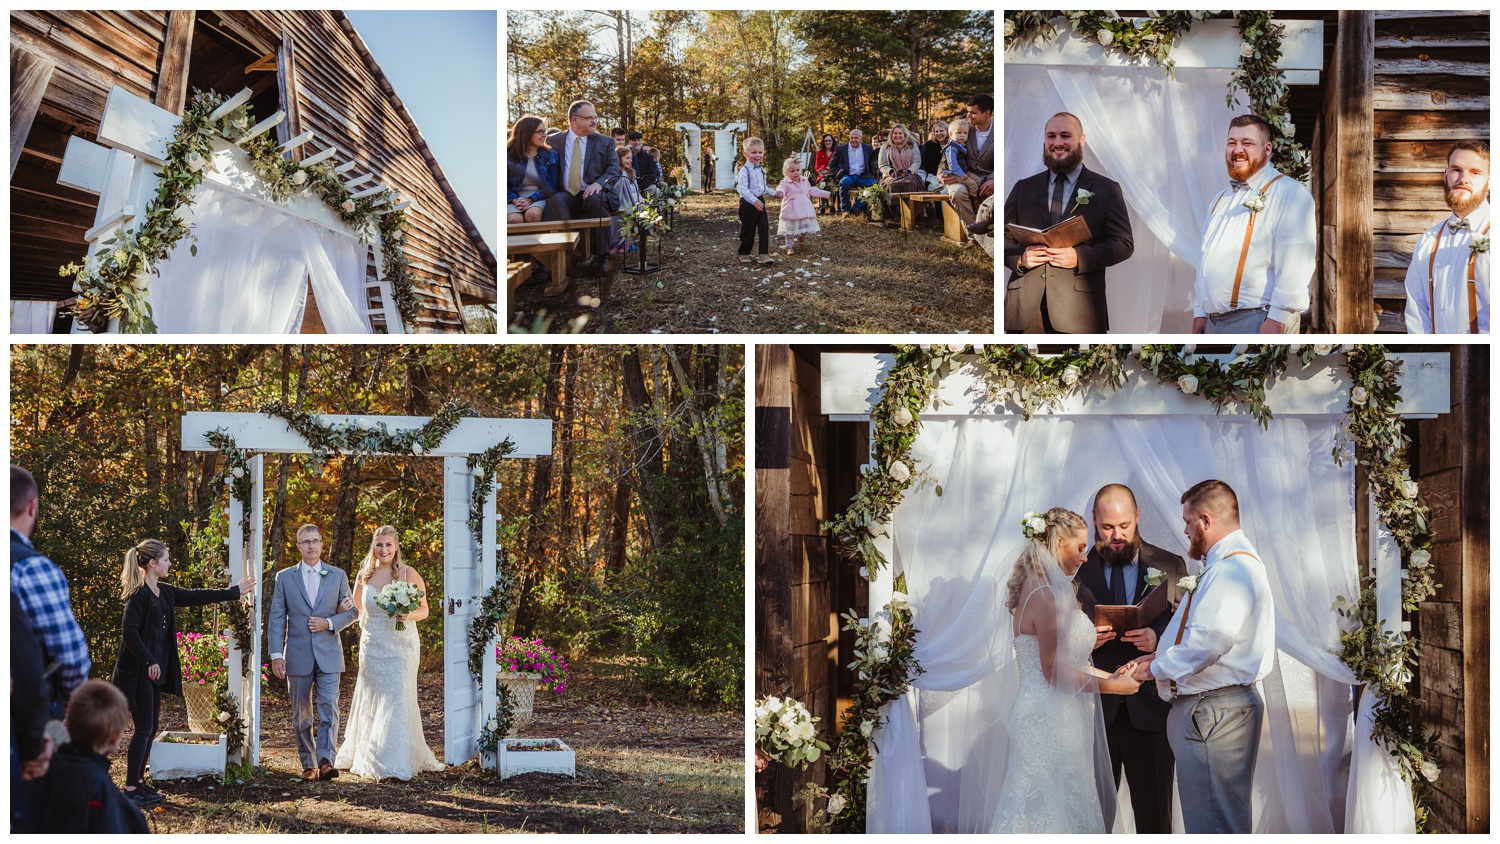 The bride walks into her wedding ceremony at The Warren Estate, images by Rose Trail Images of Rolesville, NC.